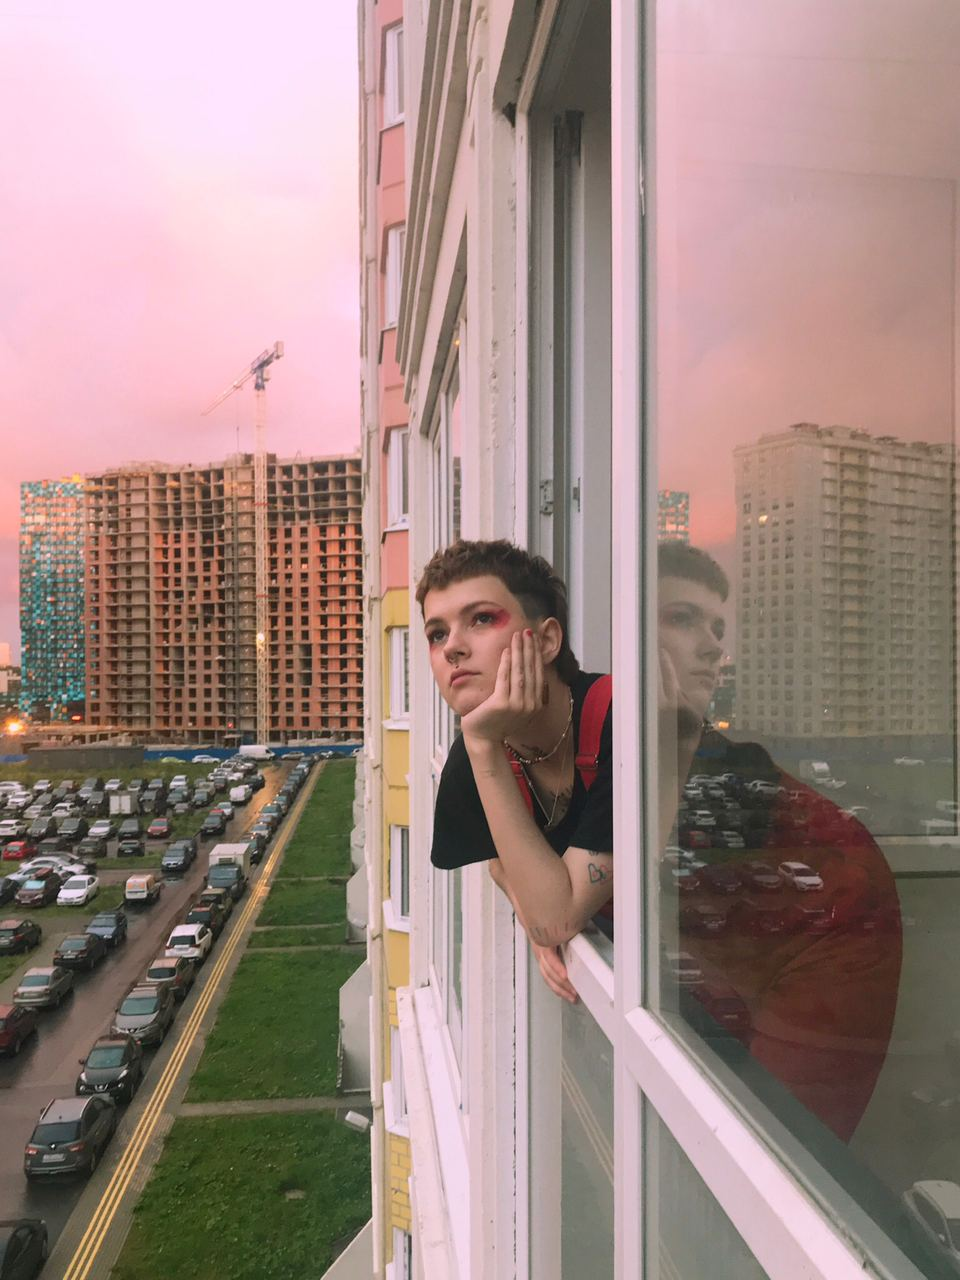 "<p><b></b></p>  <p><span>This portrait of a non-binary queer activist Katya Voziyanova was taken by their friend Sam on the morning after their 21st birthday. The photo was taken in St Petersburg, and has a spirit of gentle candid romanticism, taken amid towering housing developments still under construction. ""I think this picture was taken after we had champagne and cigarettes for breakfast. It was the morning after my birthday and it was our 19th hour of nonstop drinking, because that's what you do when you turn 21. It was a good day in the midst of the end of the world,"" Voziyanova remembers. </span></p>"